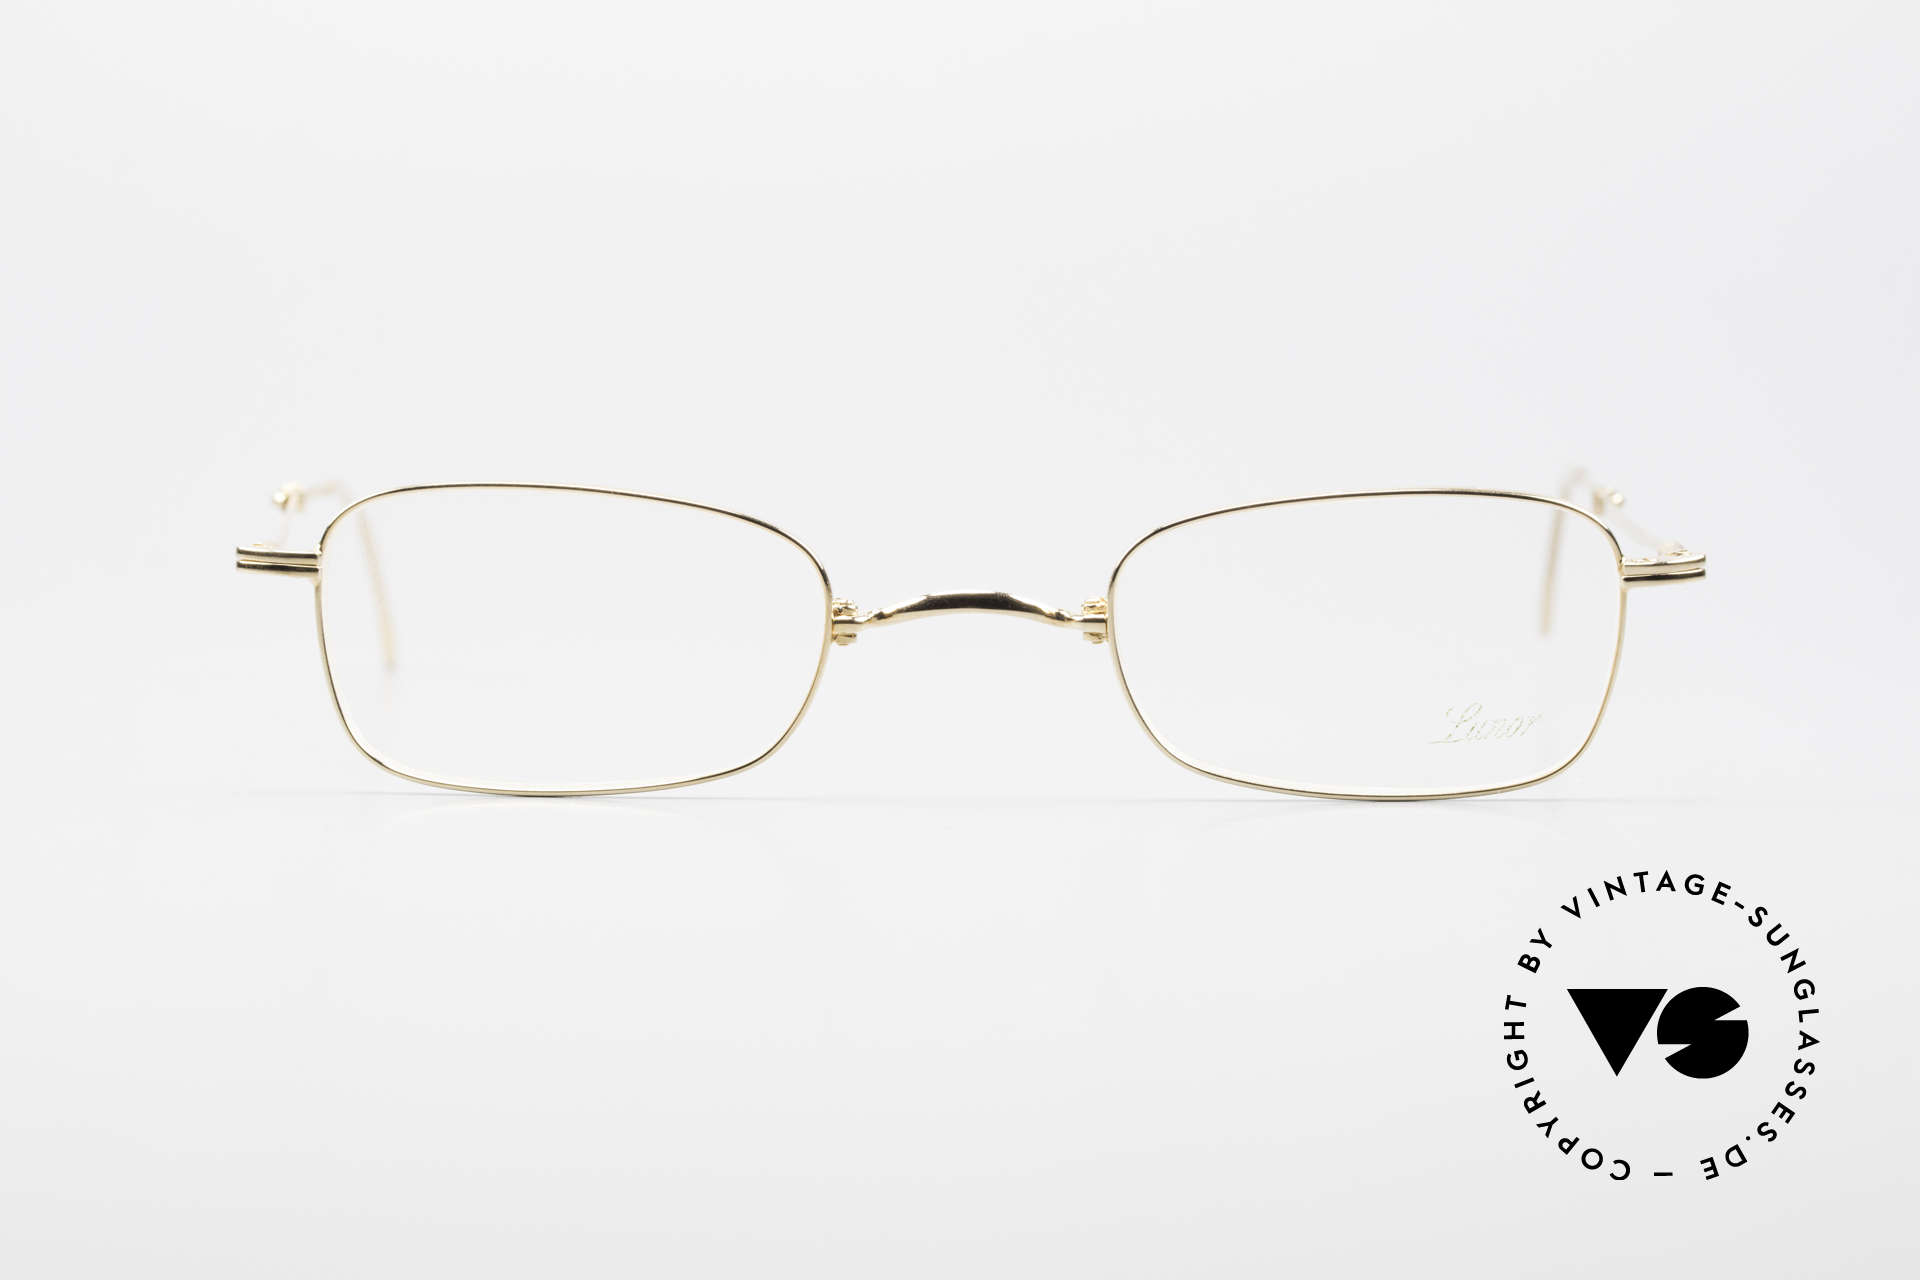 Lunor XXV Folding 02 Foldable Frame Gold Plated, traditional German brand; quality handmade in Germany, Made for Men and Women